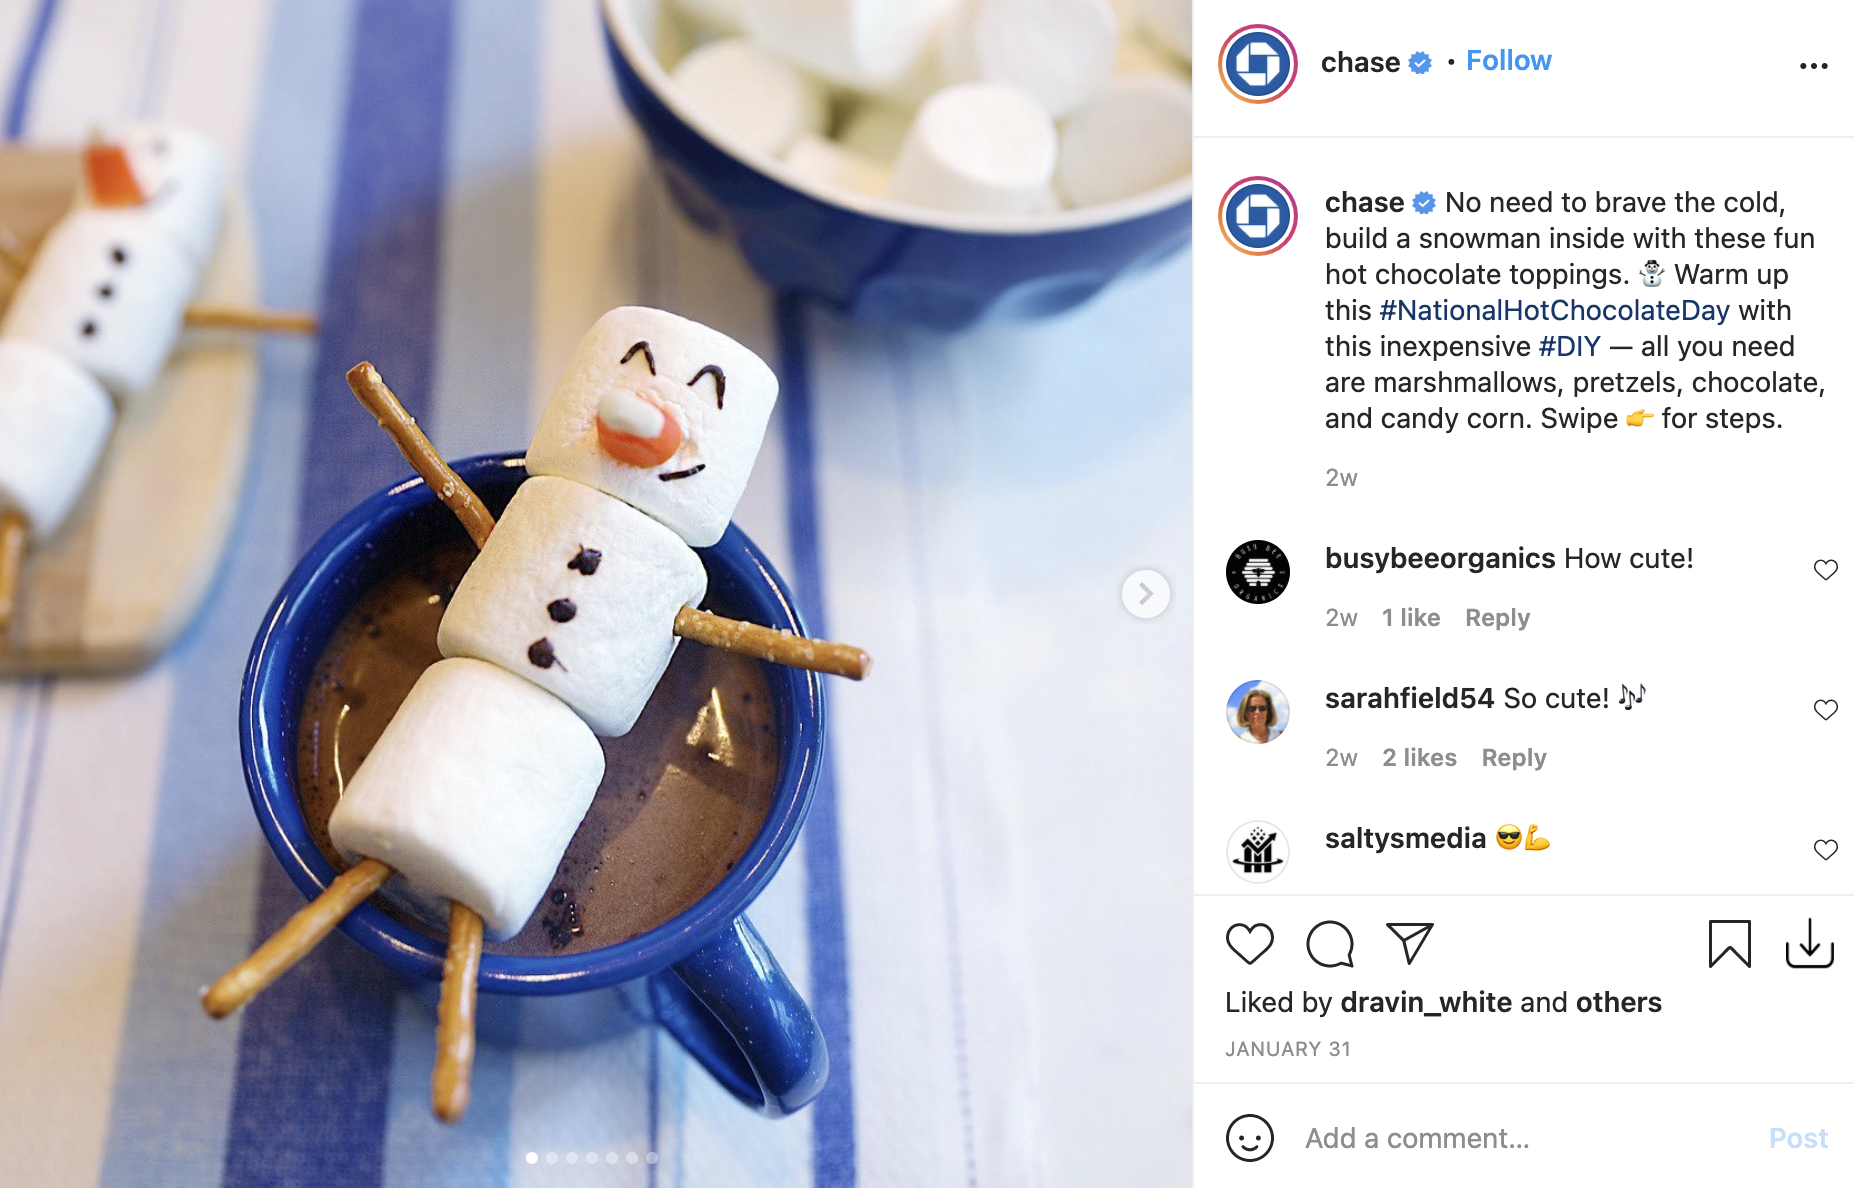 chase bank instagram account